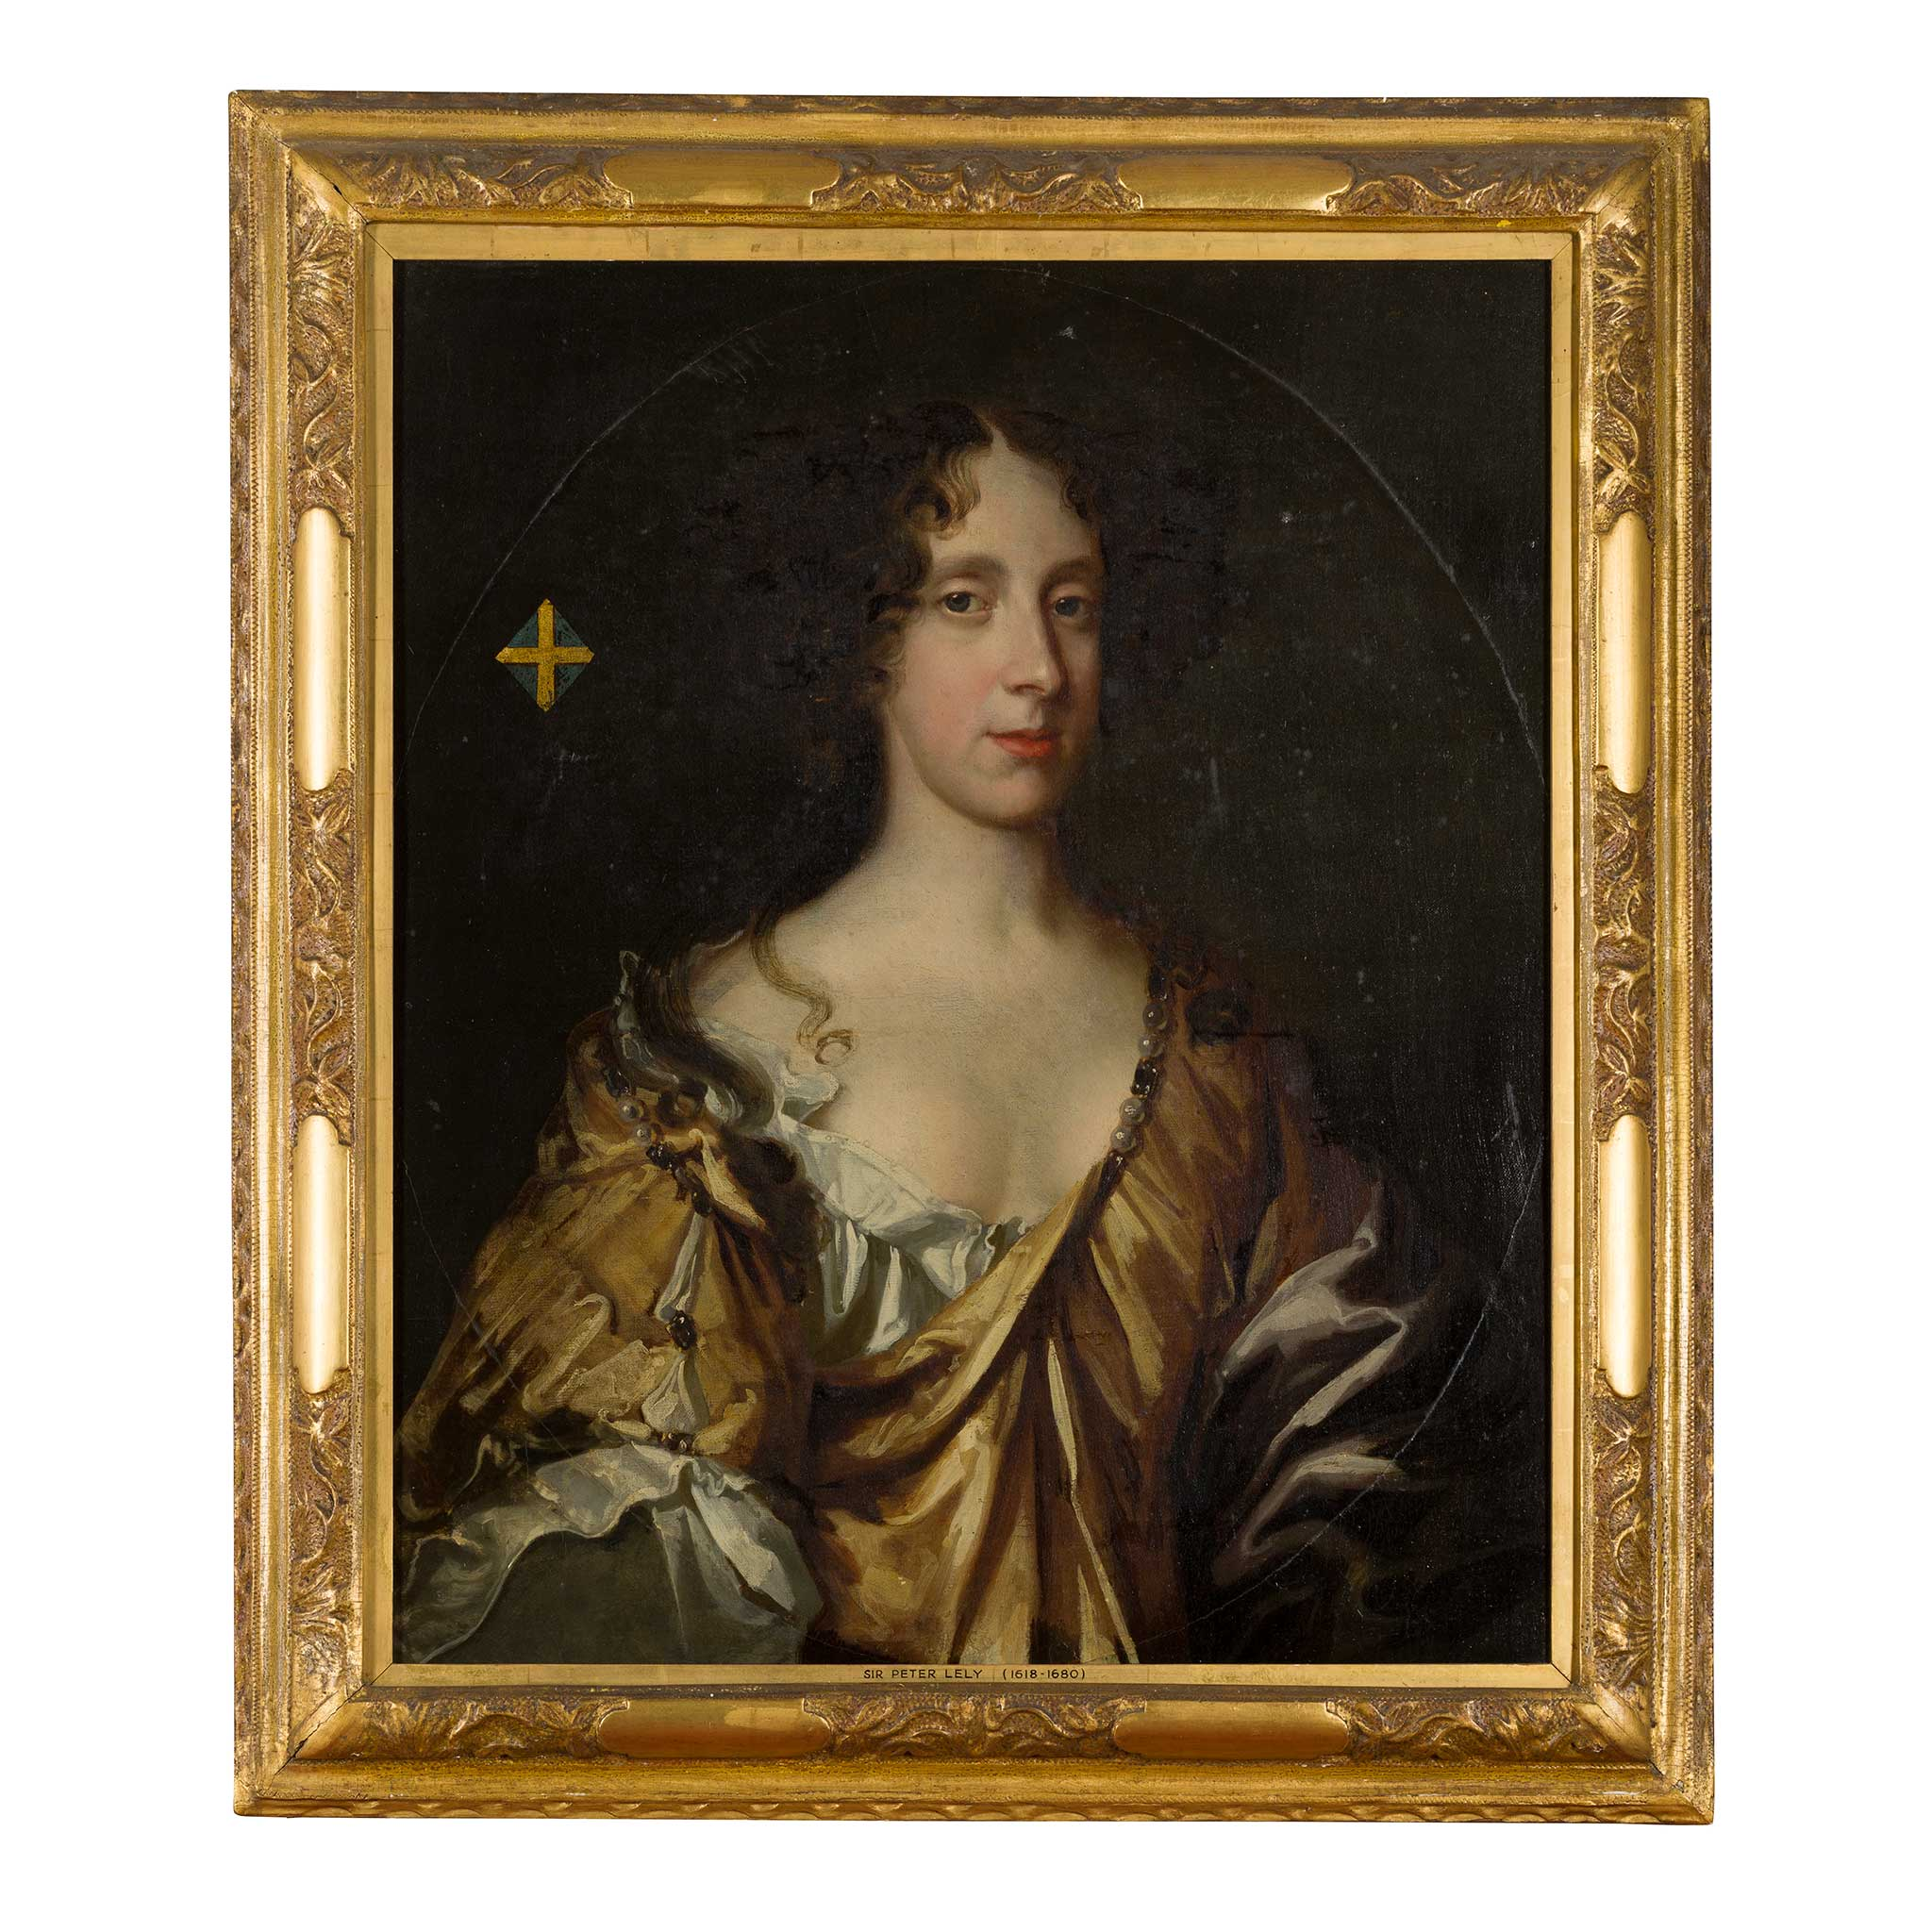 FOLLOWER OF SIR PETER LELY HALF LENGTH PORTRAIT OF THE DUCHESS OF CLEVELAND - Image 2 of 2